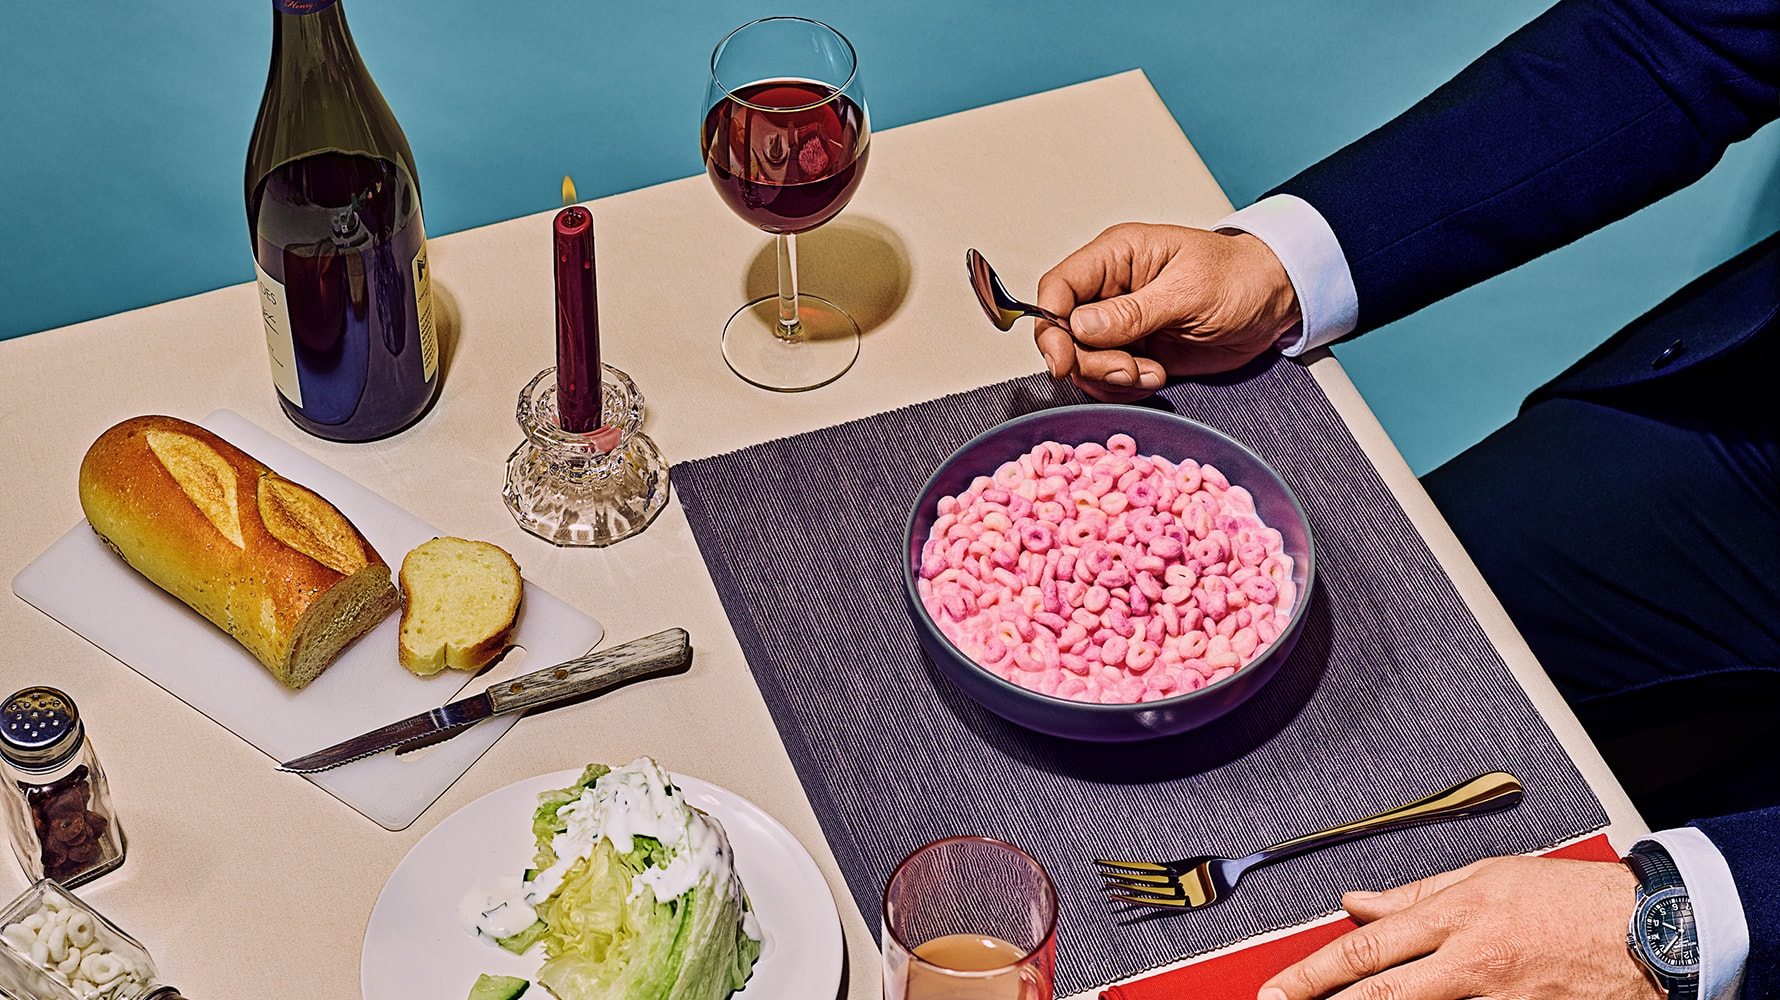 These Direct-to-Consumer Food Brands Want to Change How You